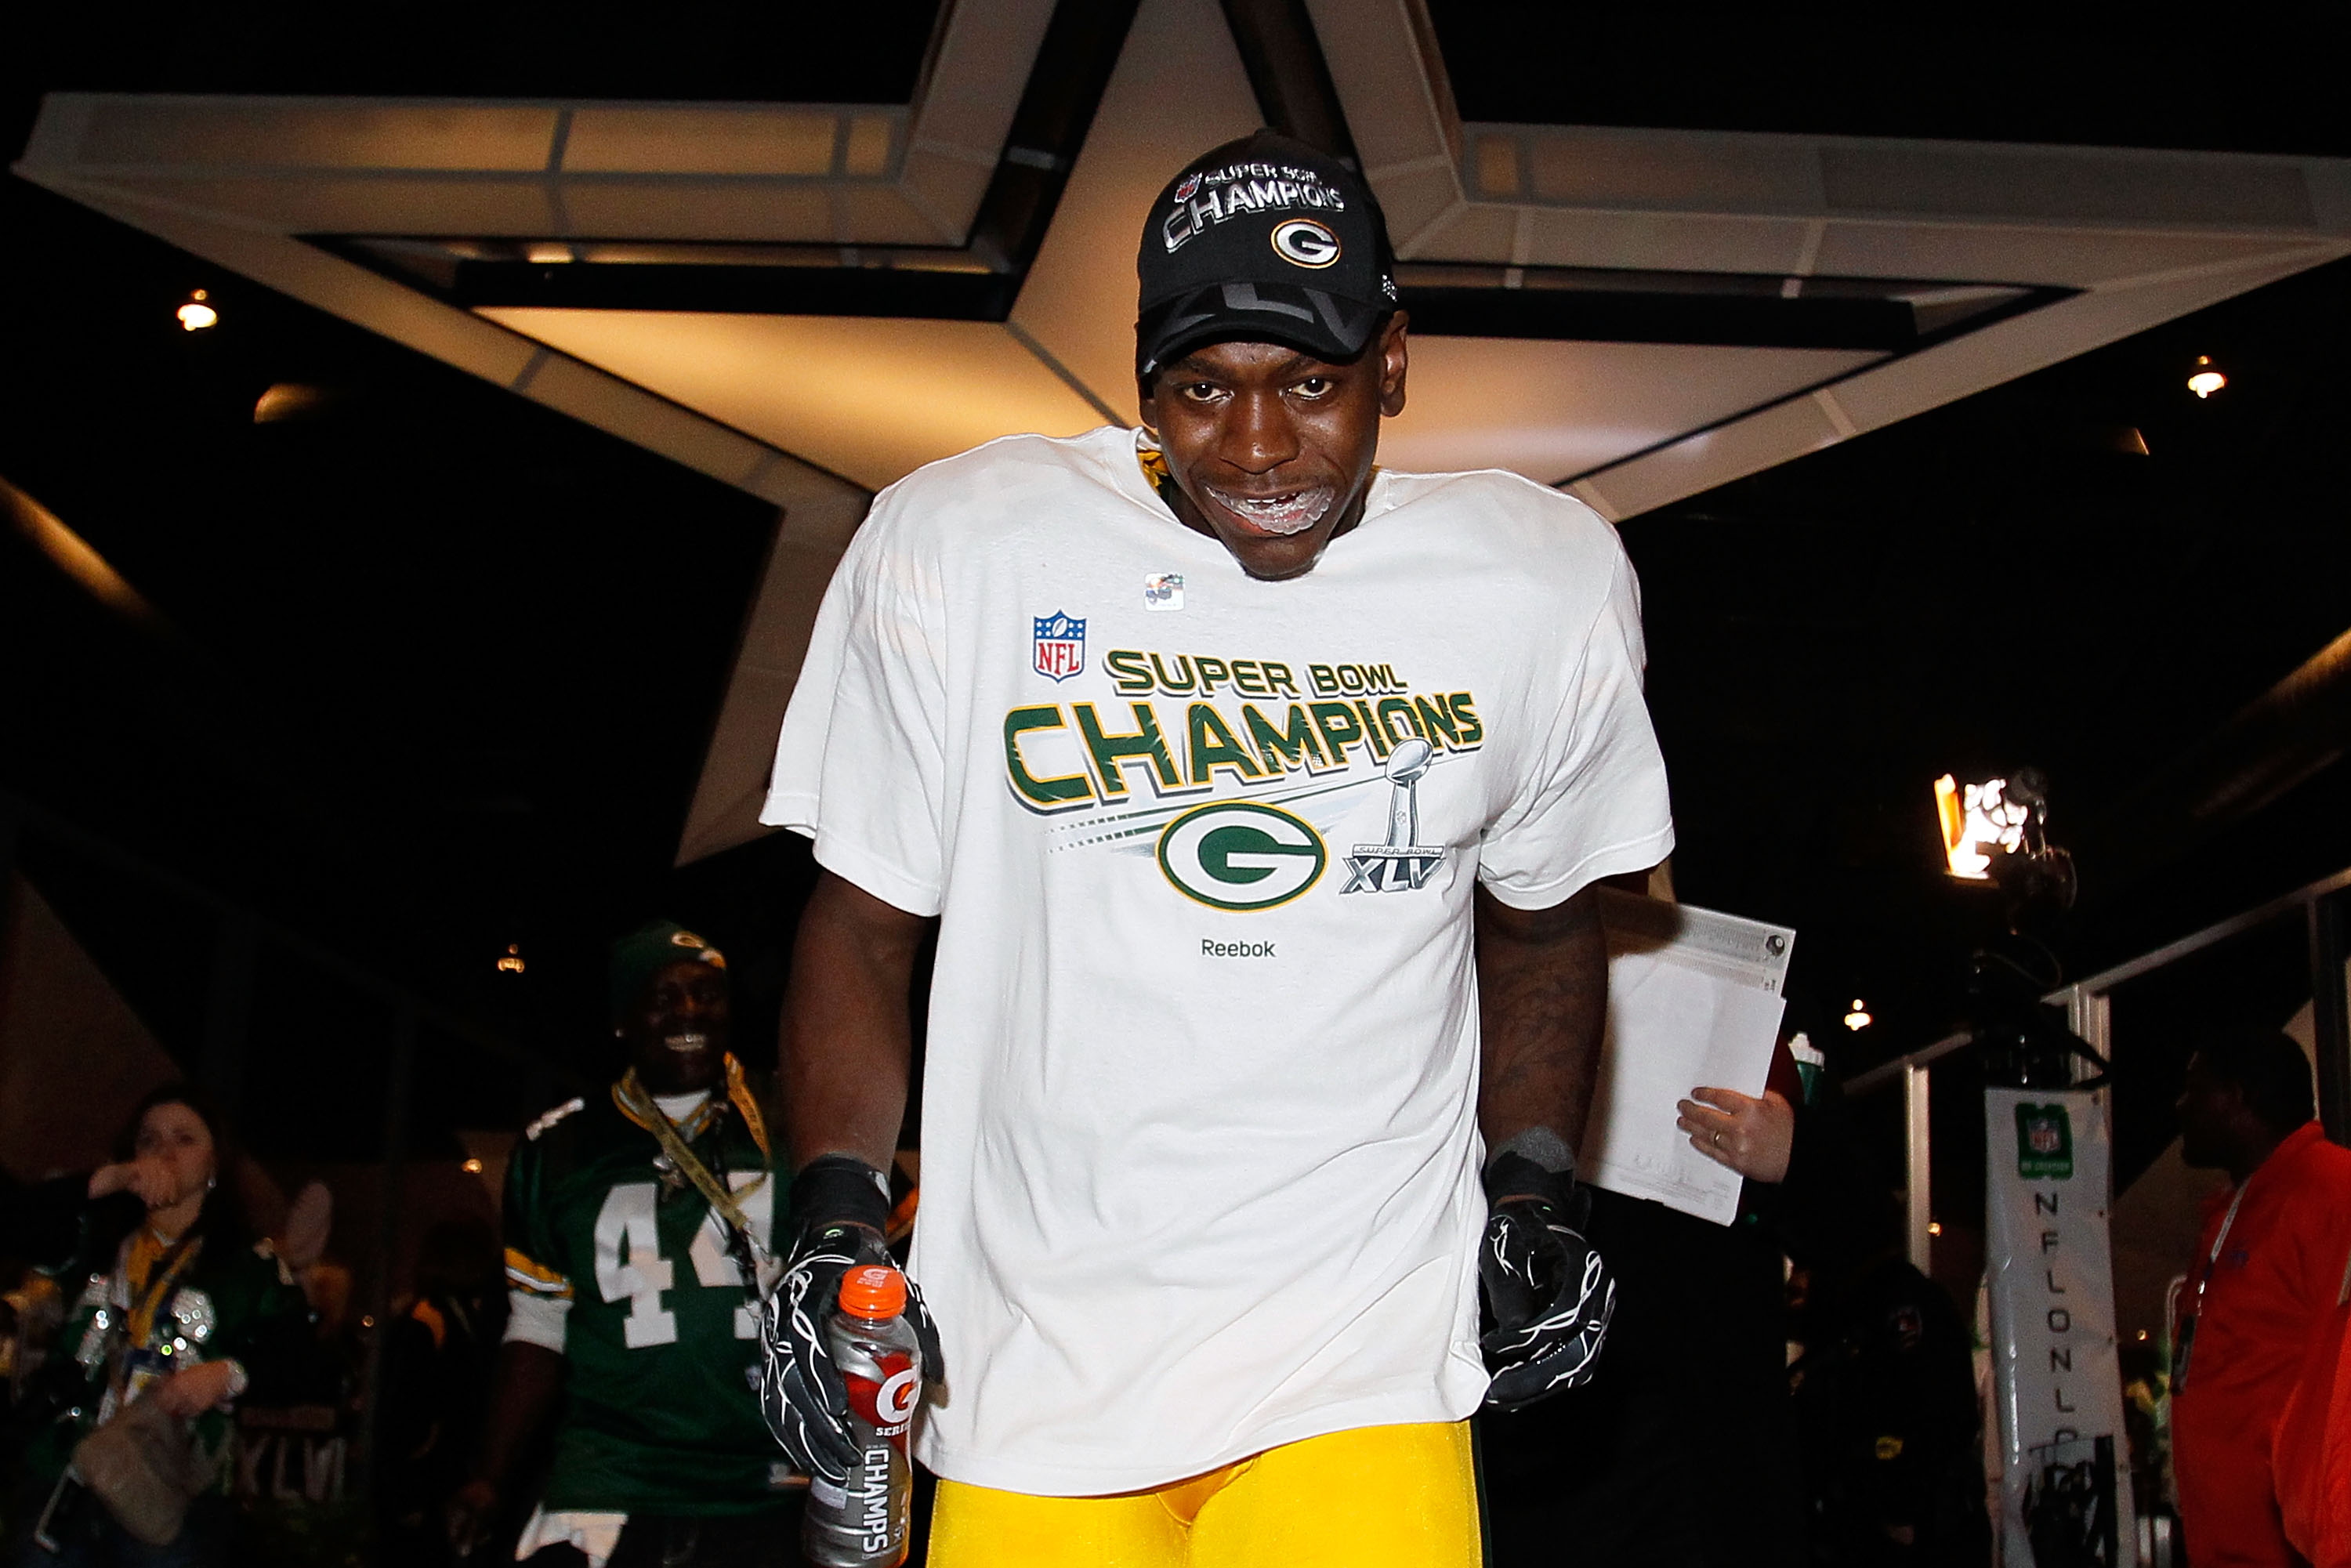 ARLINGTON, TX - FEBRUARY 06:  James Starks #44 of the Green Bay Packers celebrates after they defeated the Pittsburgh Steelers 31 to 25 during Super Bowl XLV at Cowboys Stadium on February 6, 2011 in Arlington, Texas.  (Photo by Kevin C. Cox/Getty Images)